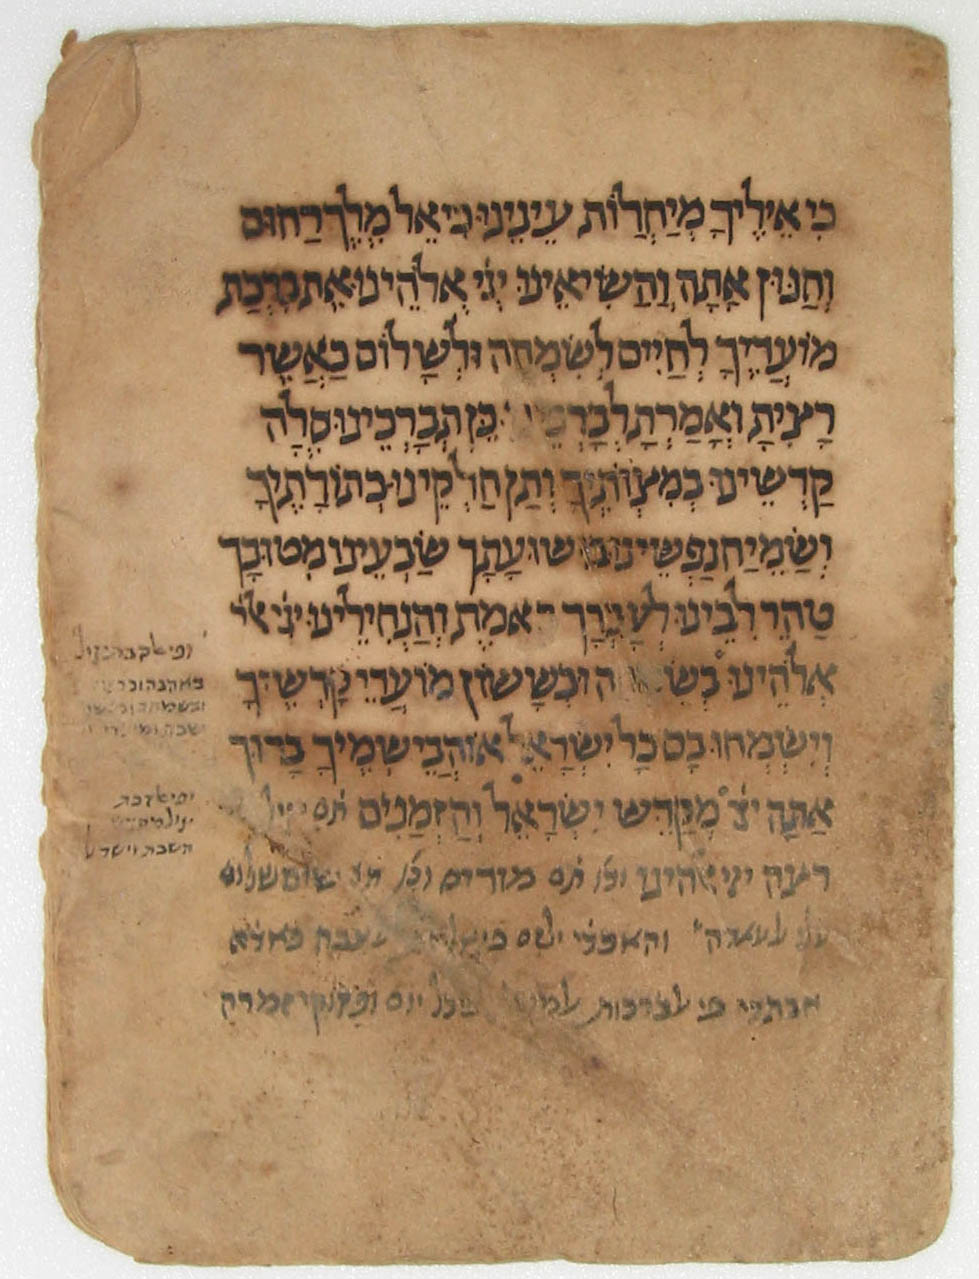 ancient writing materials paper u m library hebrew manuscript written on paper 71 2 263 full image front coptic manuscript written on paper